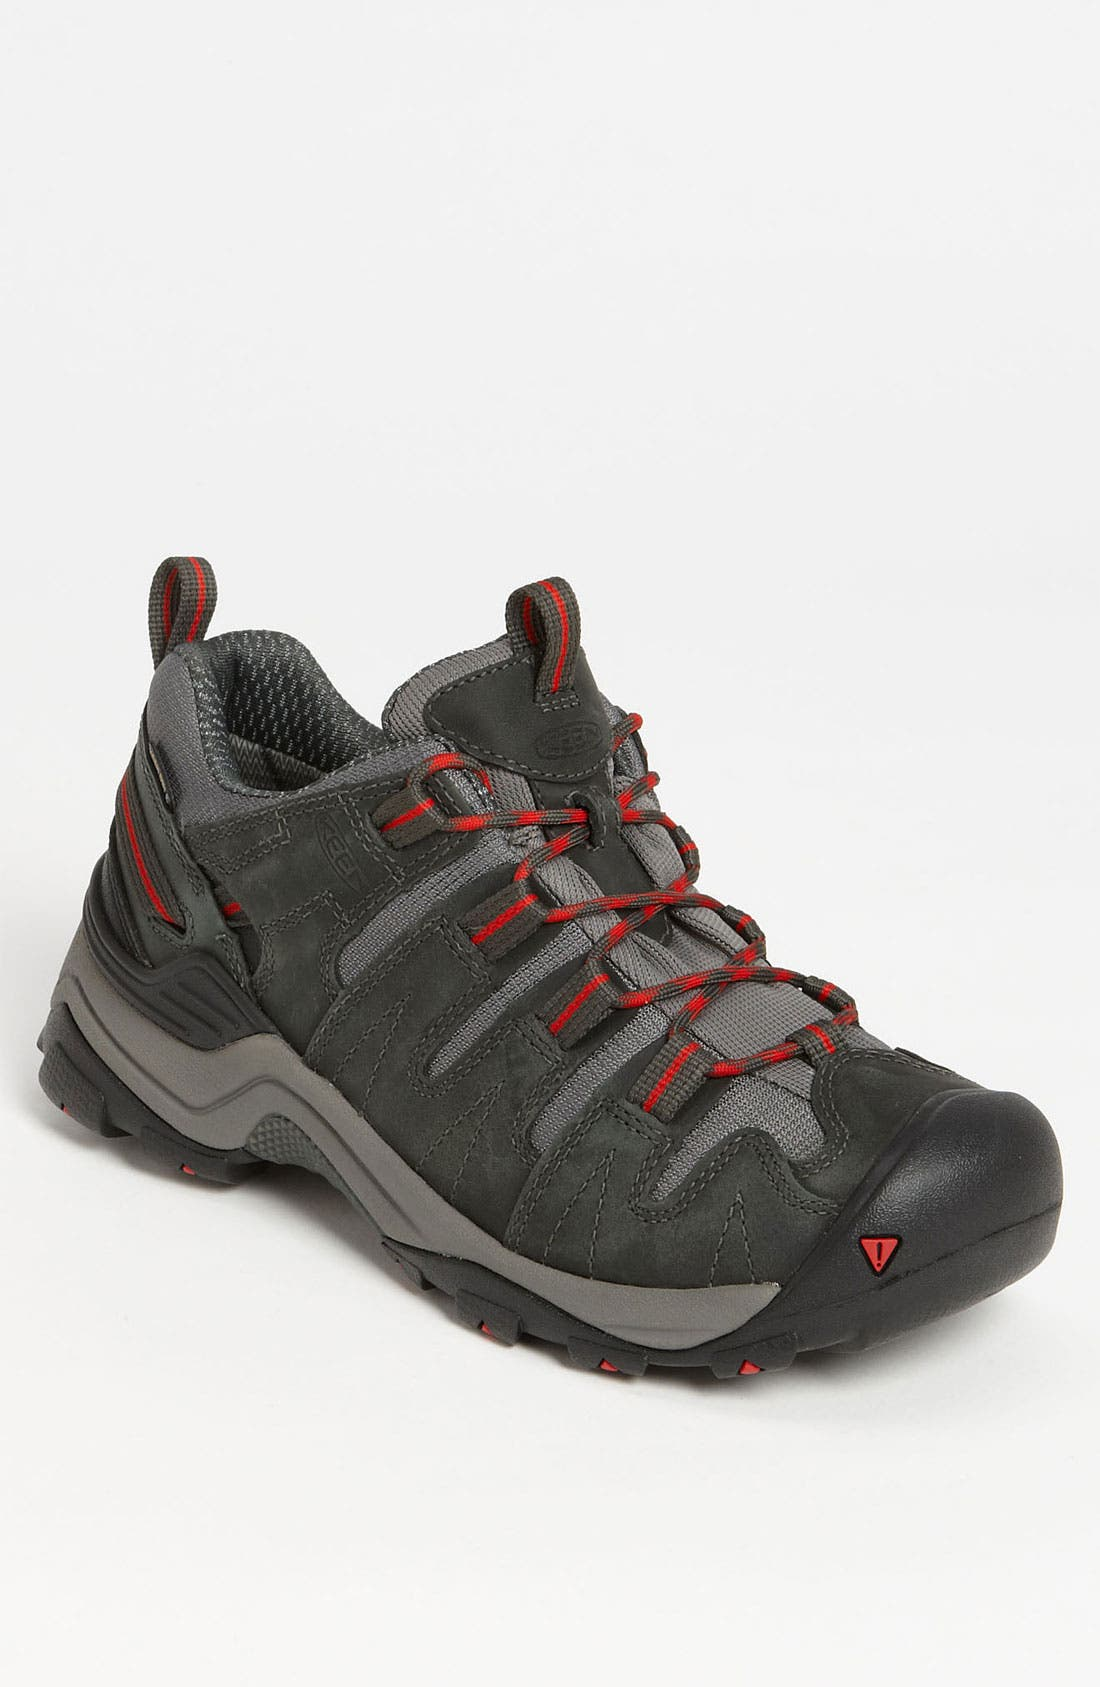 Alternate Image 1 Selected - Keen 'Gypsum' Hiking Shoe (Men) (Online Only)